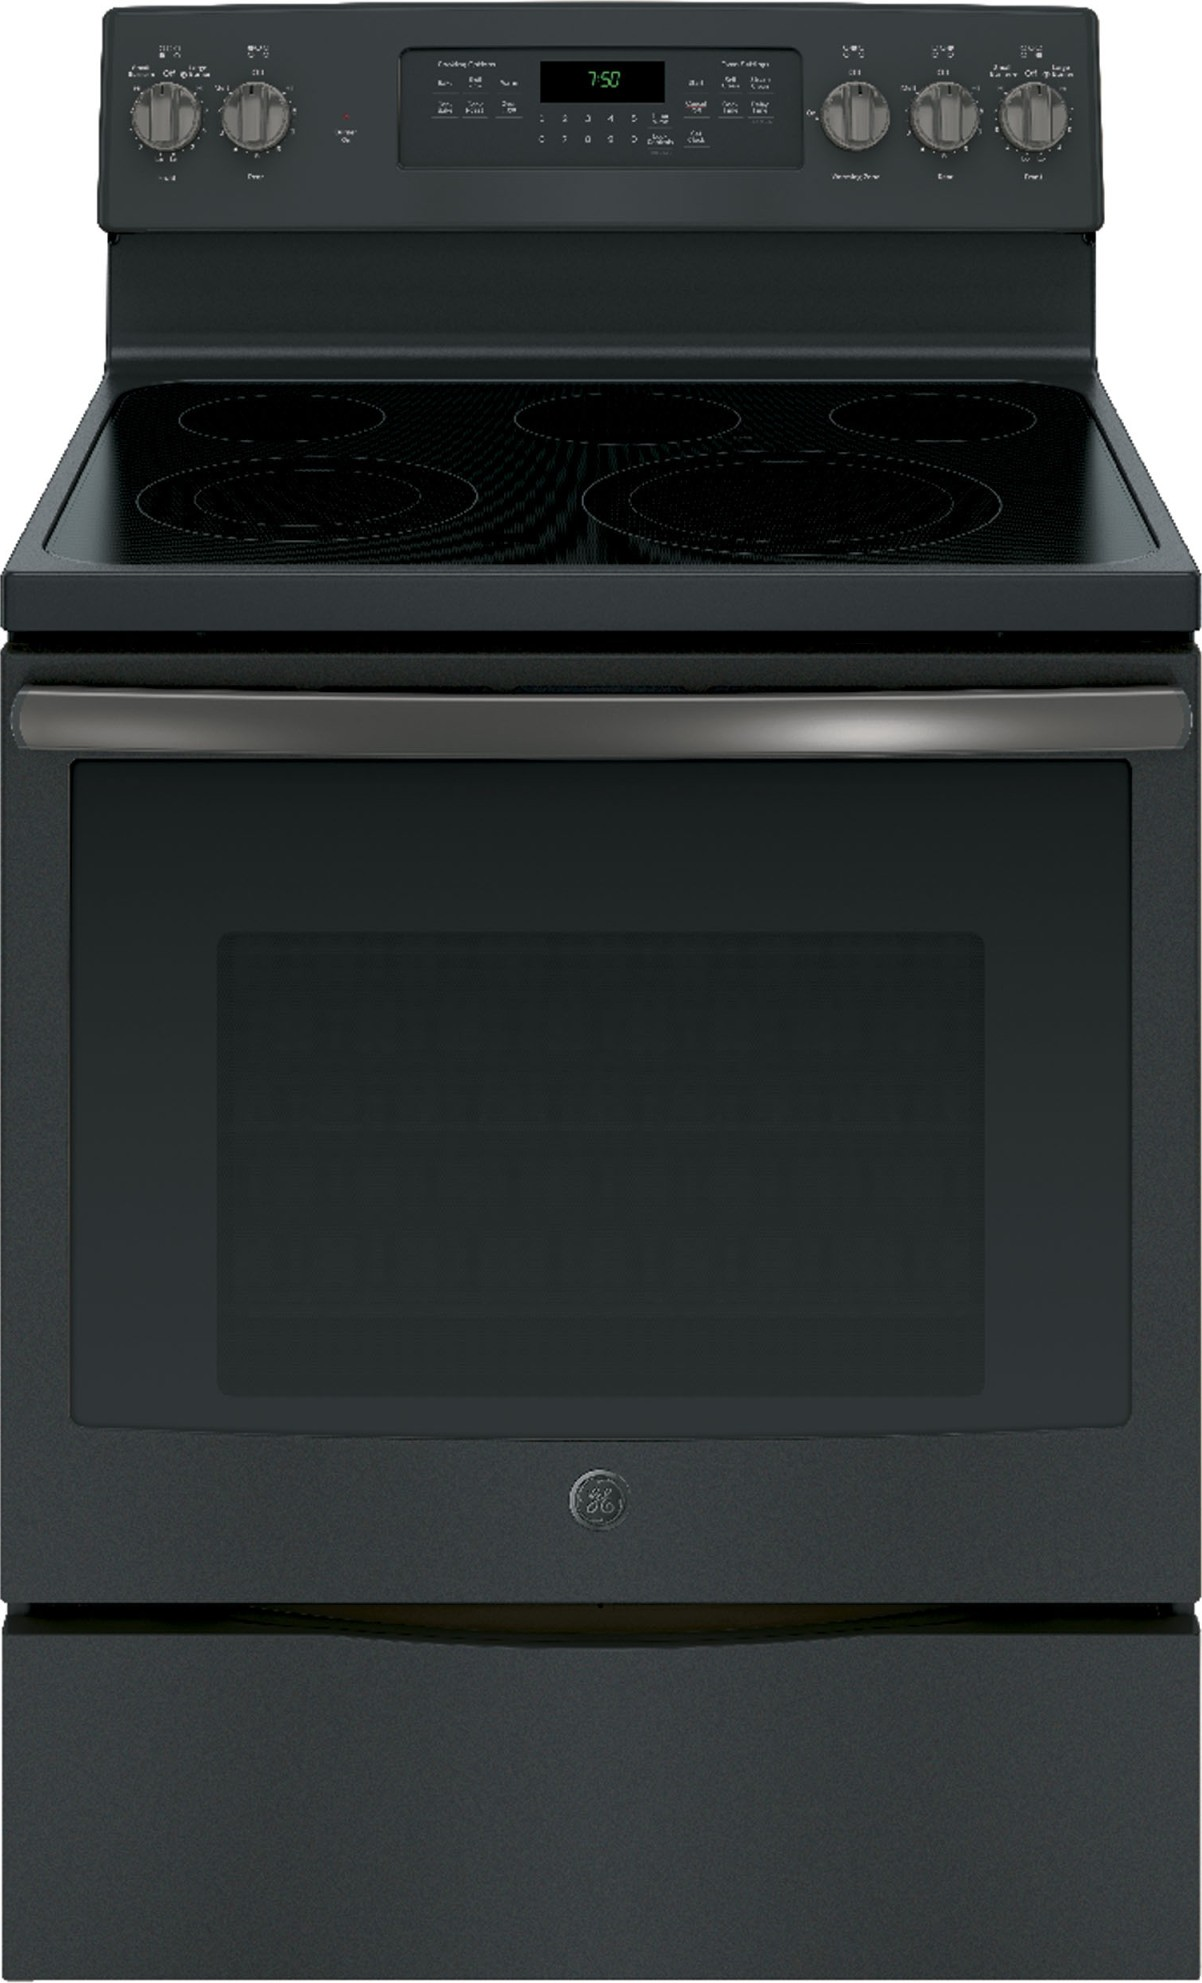 Jb750fjds Ge 30 Quot Convection Electric Range Steam Self